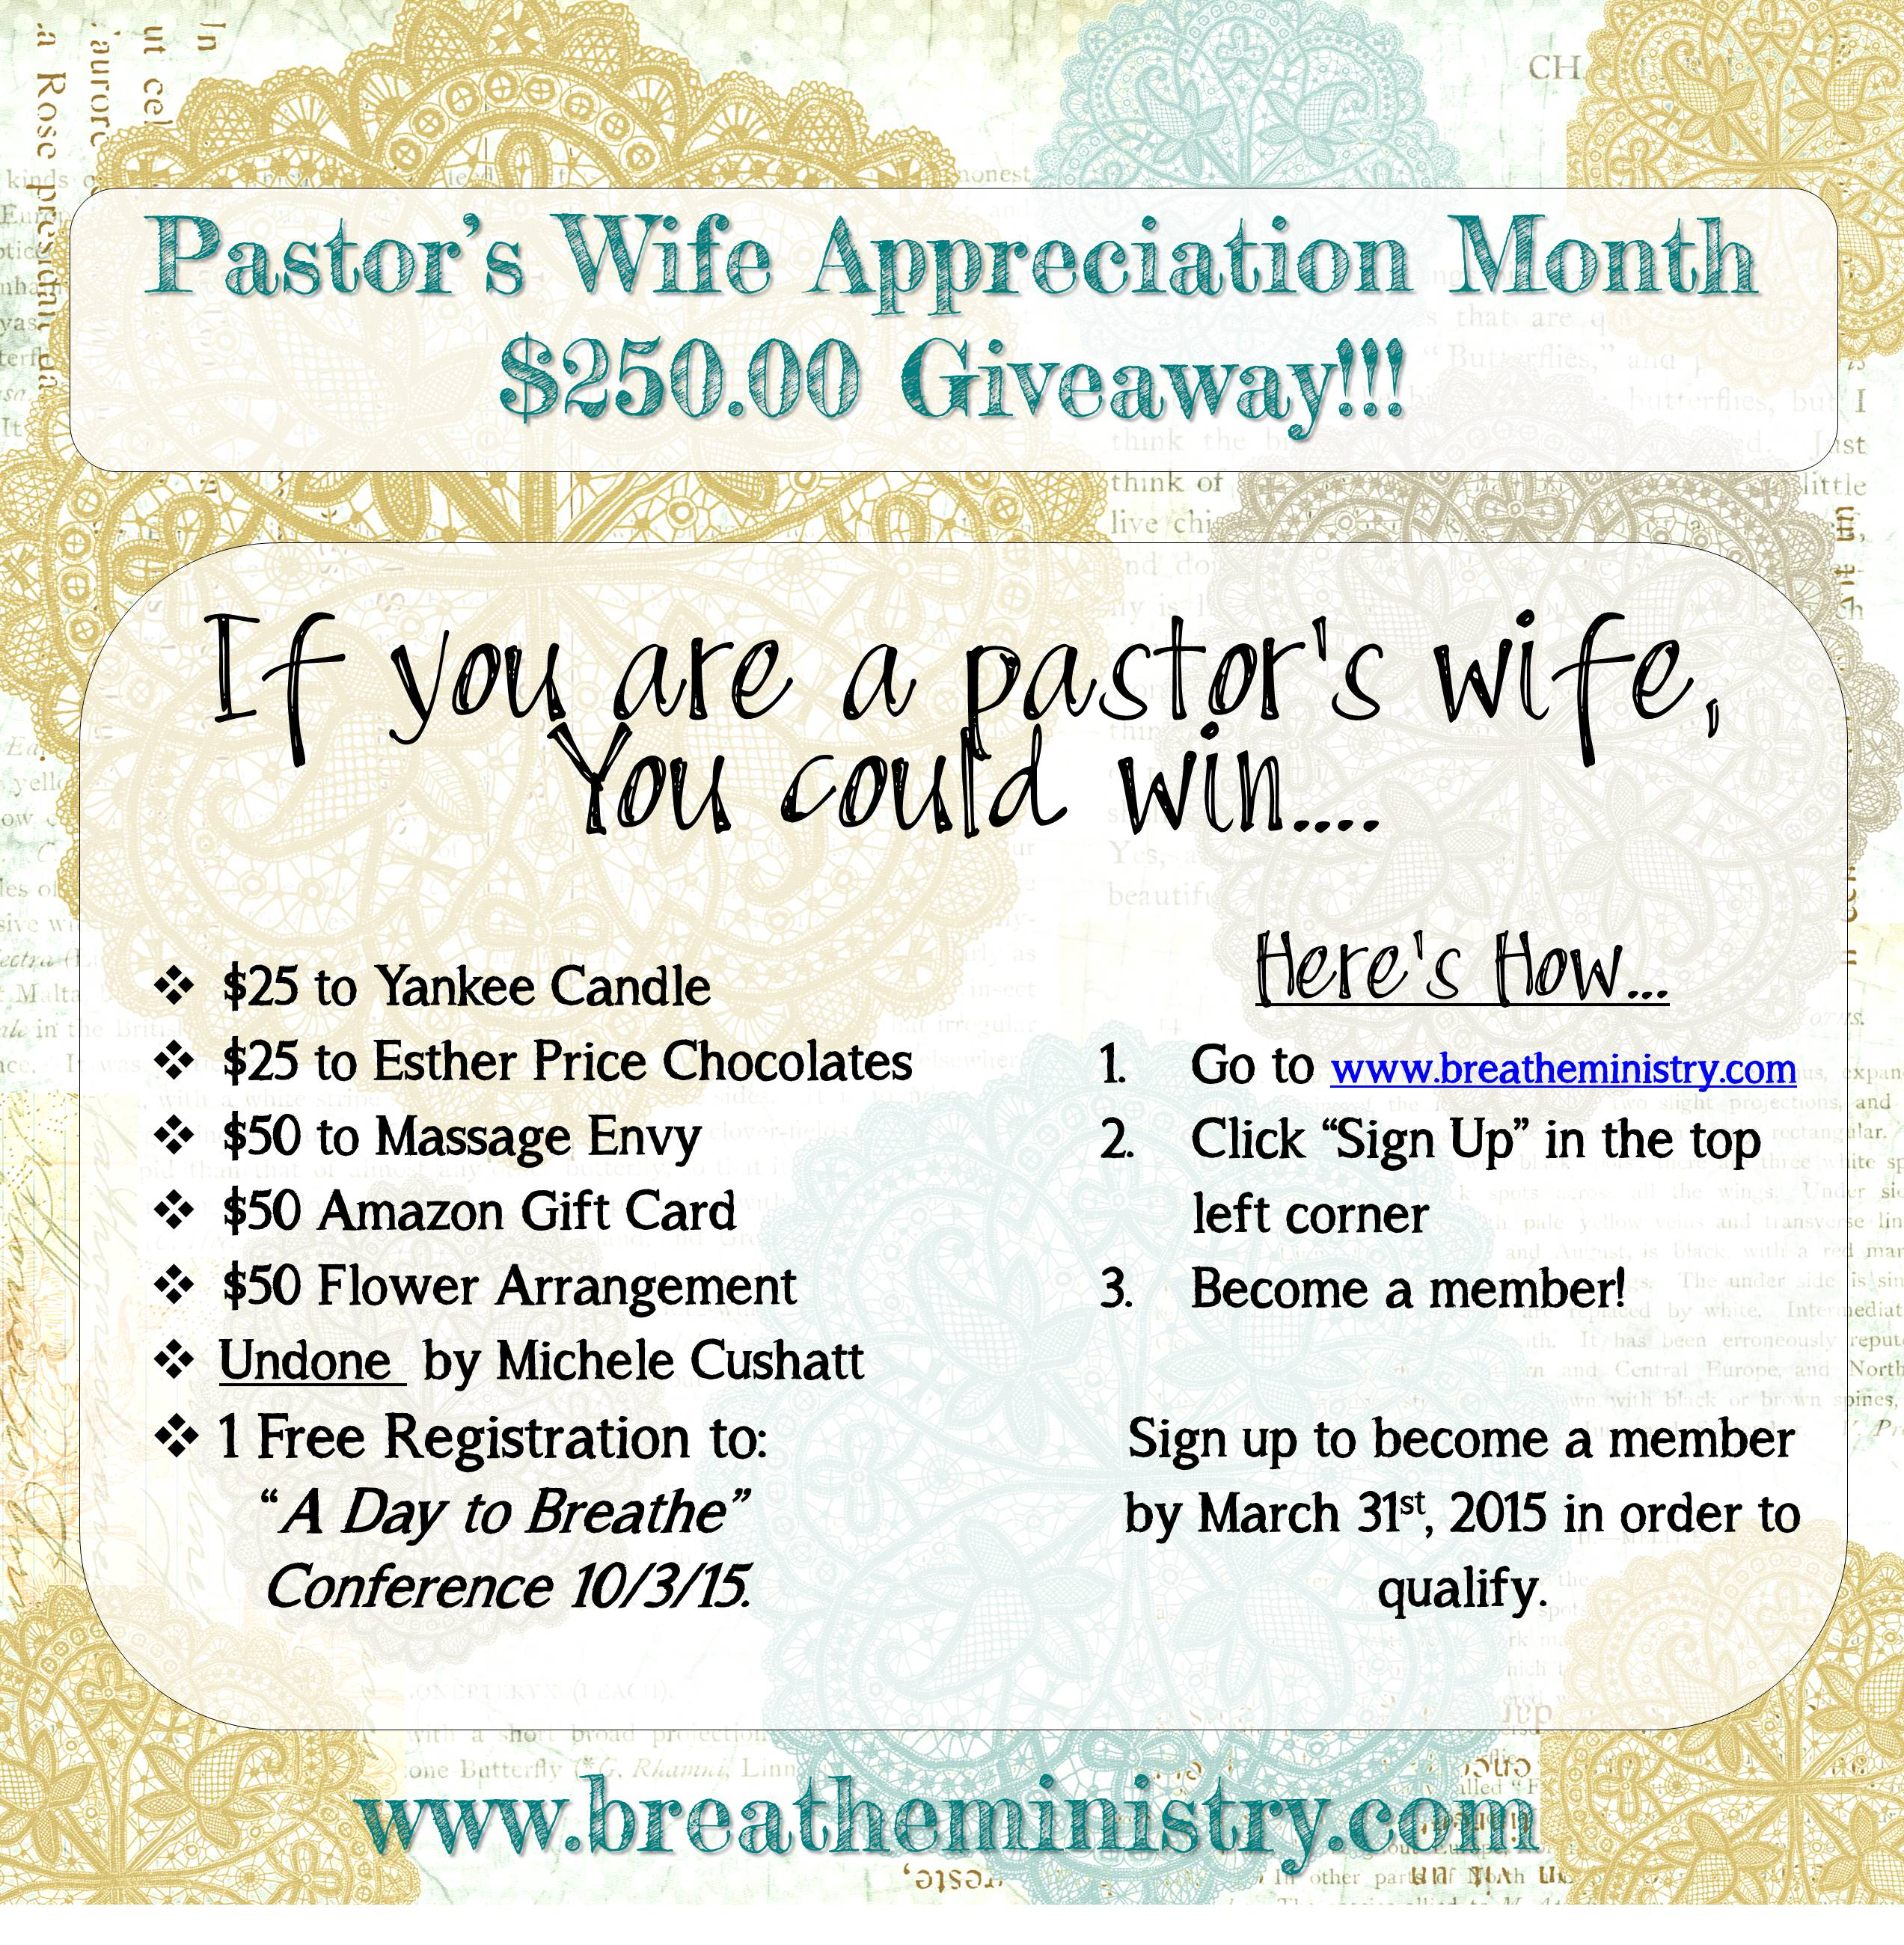 March is Pastor's Wife Appreciation Month! - Breathe Ministry